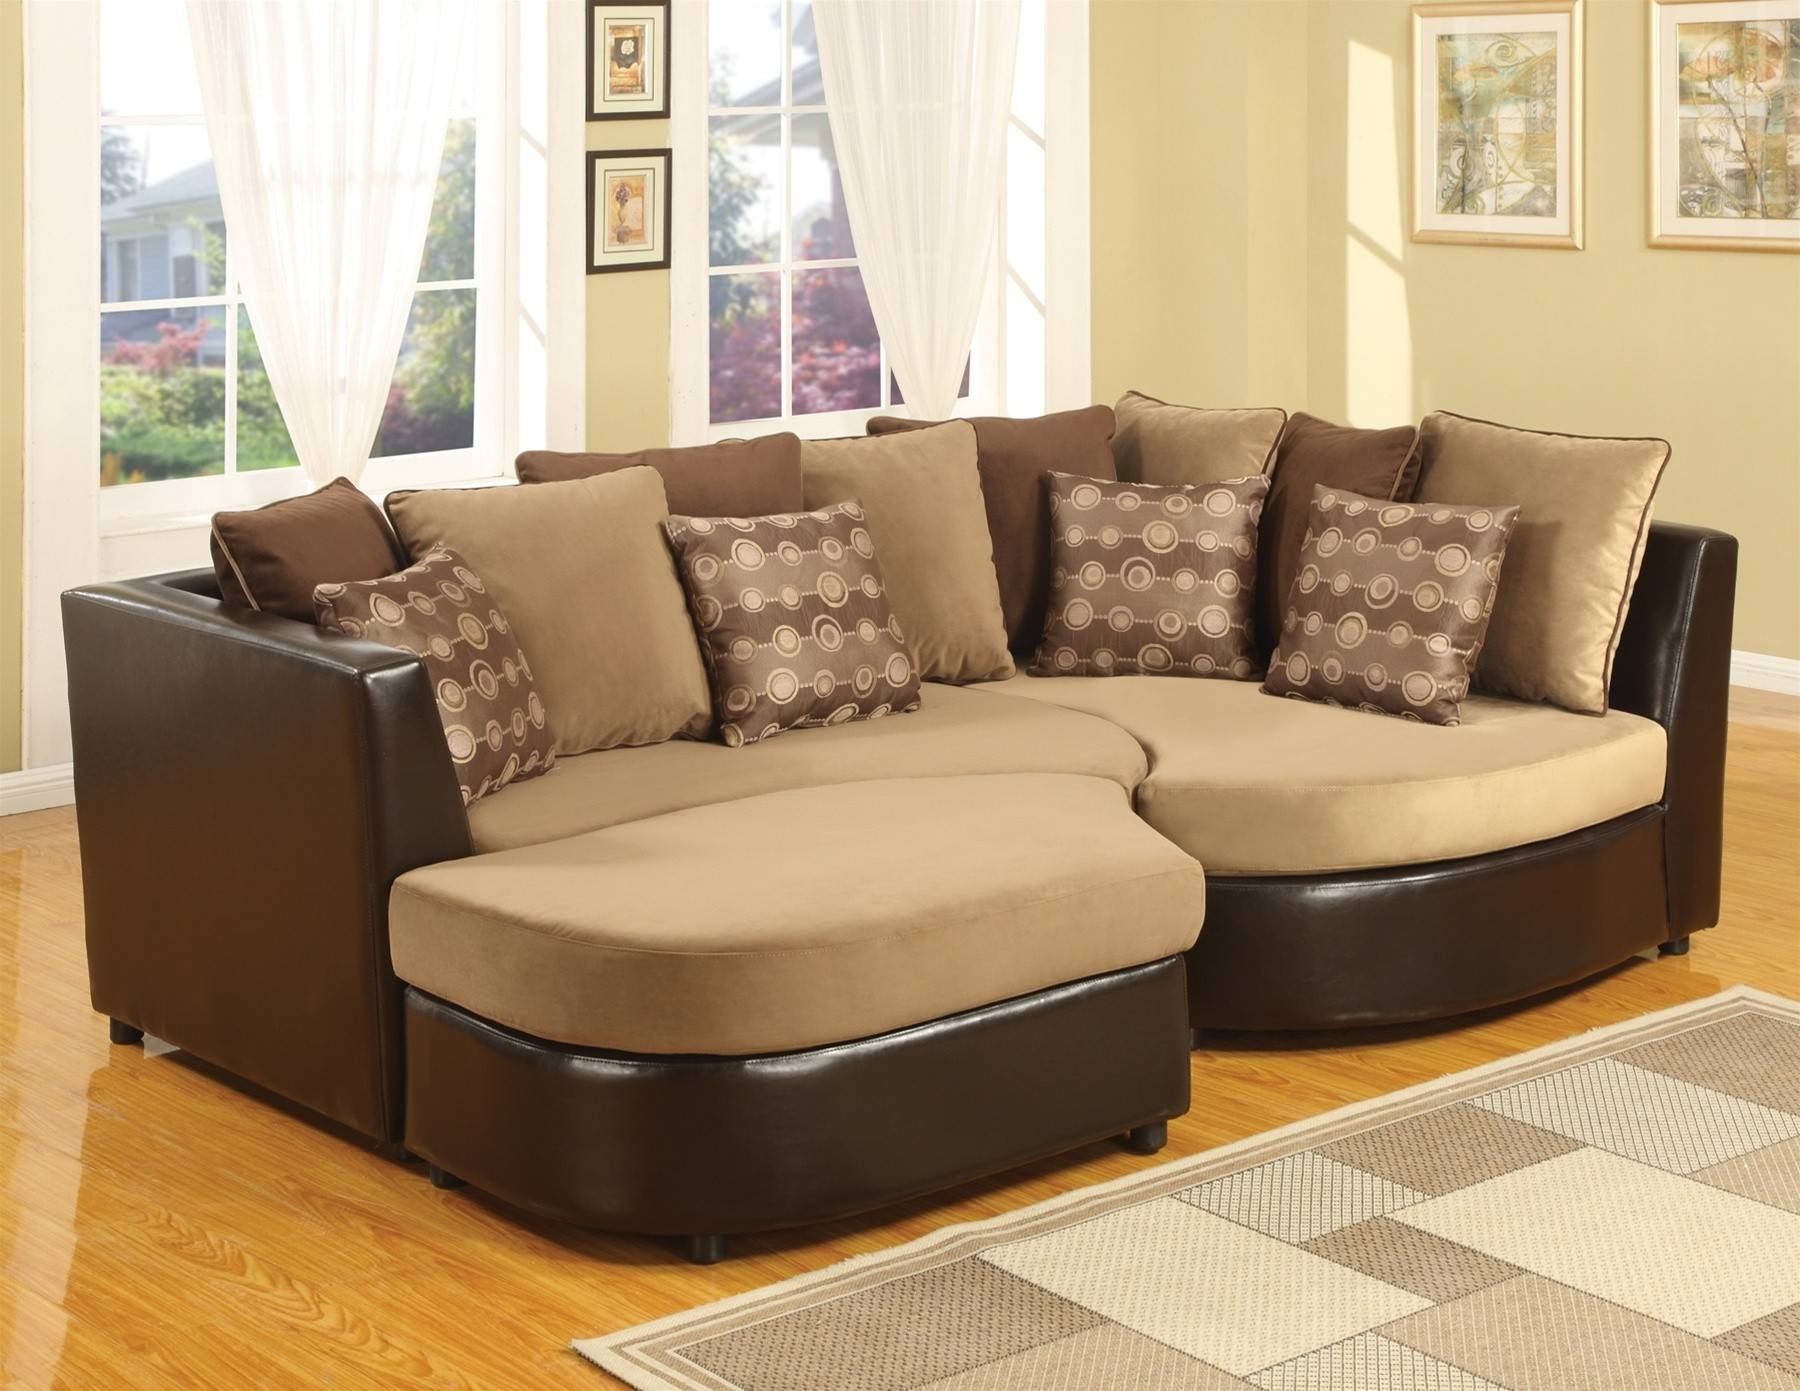 Furniture: Great Pit Sectional For Living Room Furniture Ideas Inside Soft Sectional Sofas (View 11 of 30)